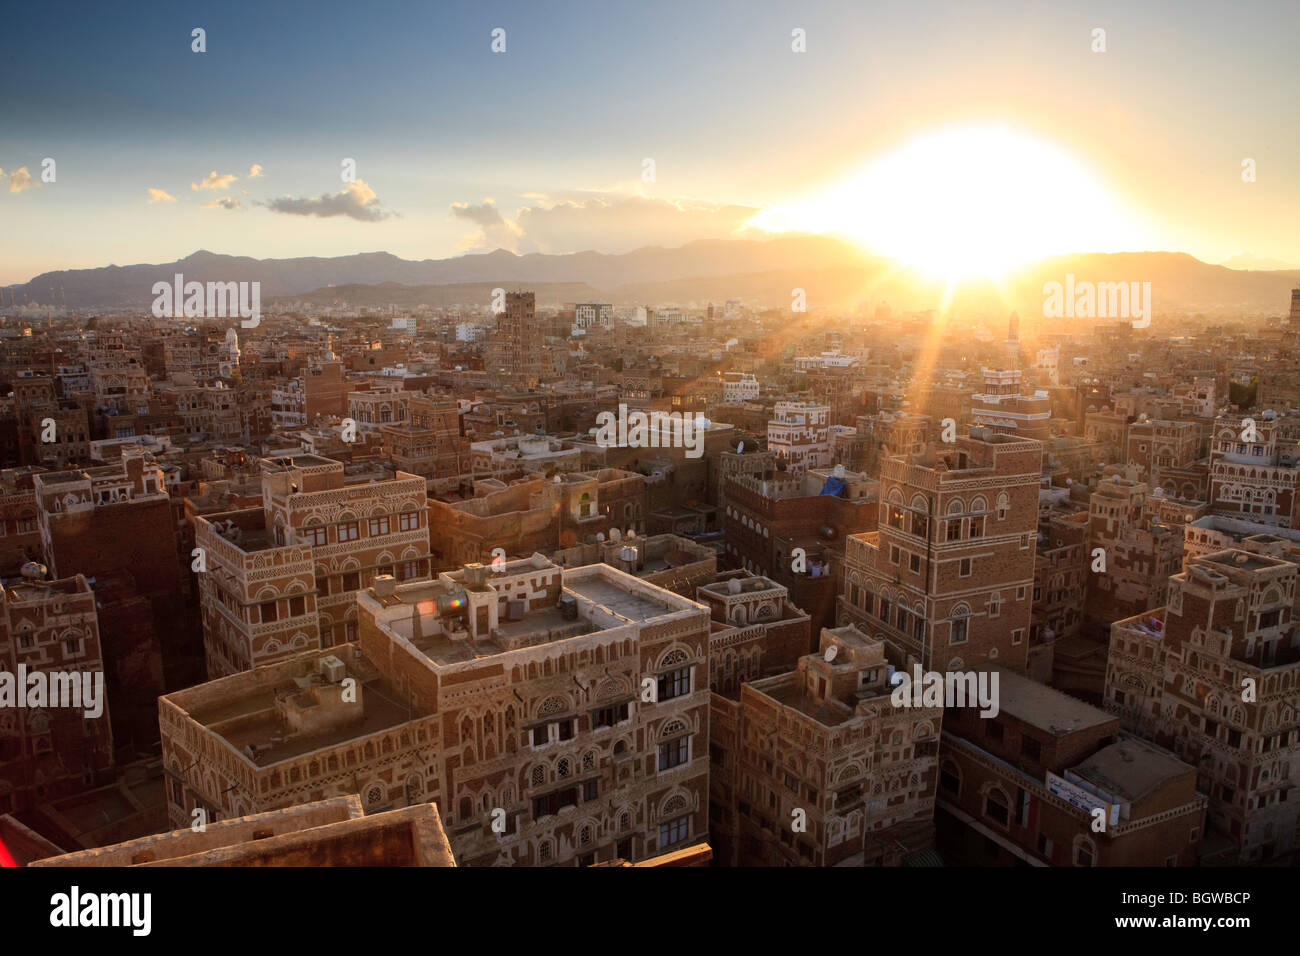 Sunset over Sana'a, Yemen - Stock Image